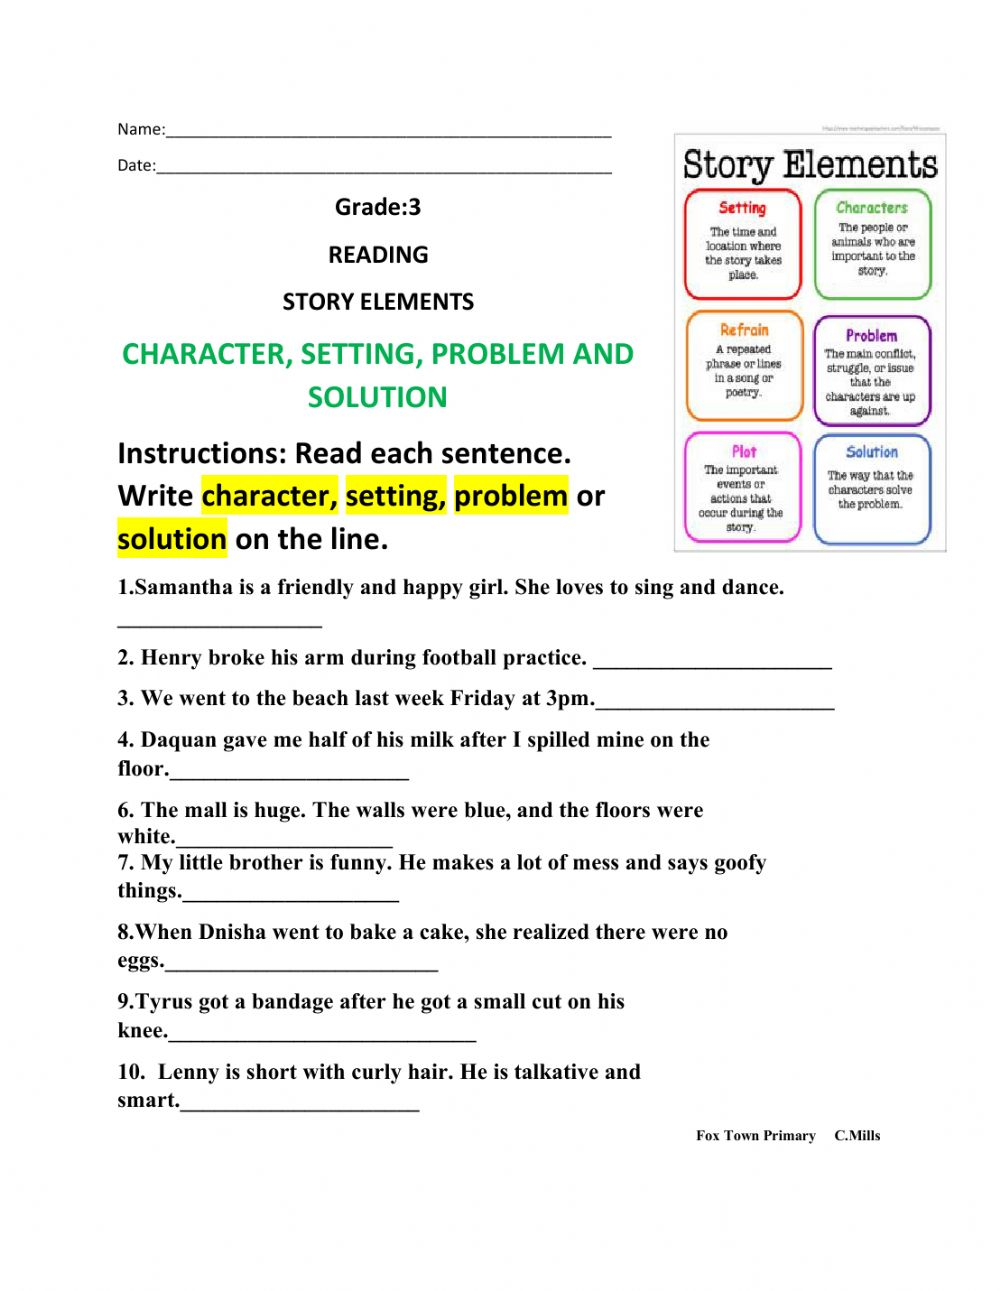 Story Elements Worksheet Pdf Grade 4